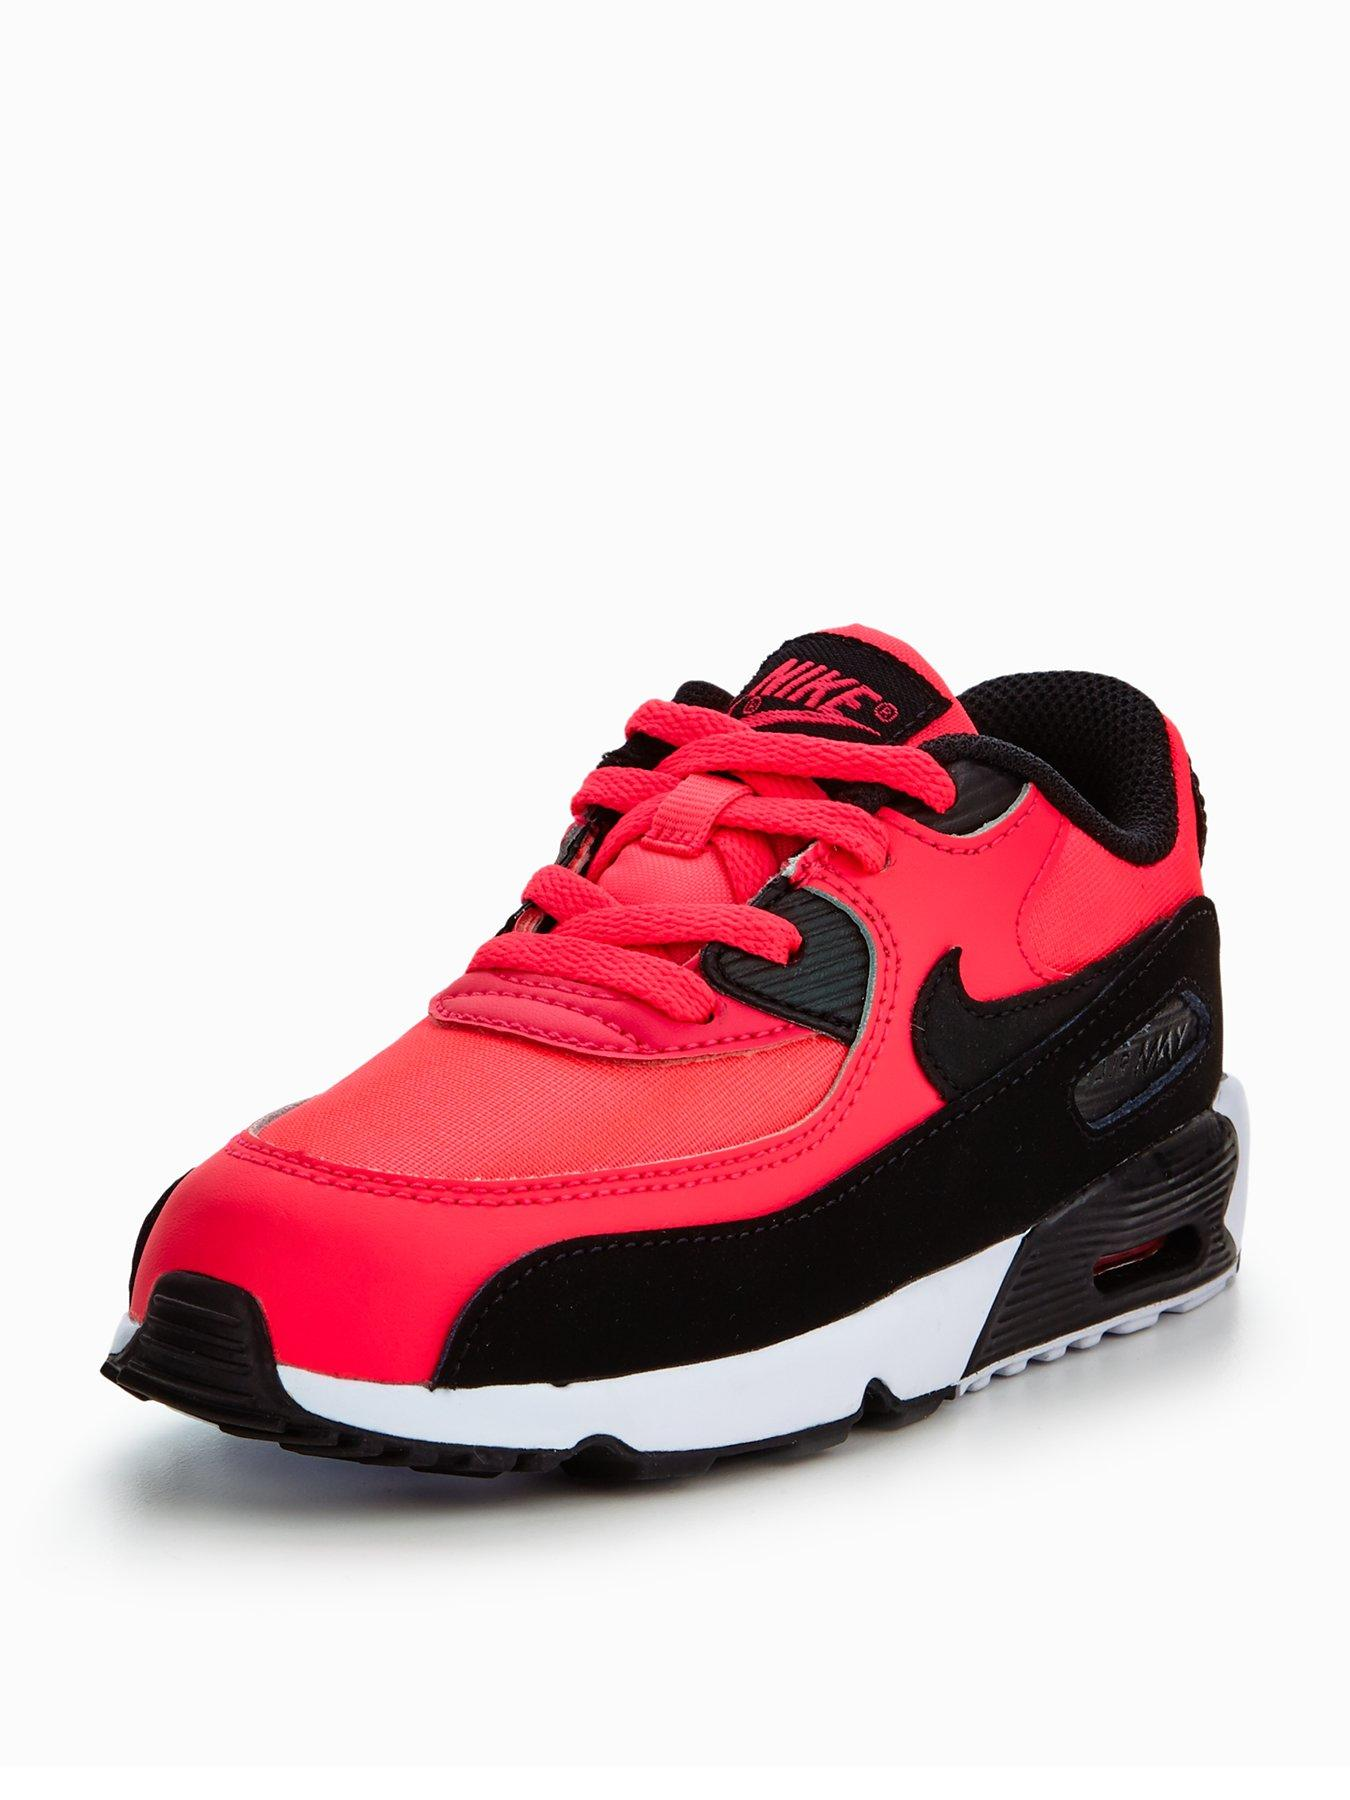 san francisco 86bc4 dc8d3 ... nike air max 90 mesh infant trainer